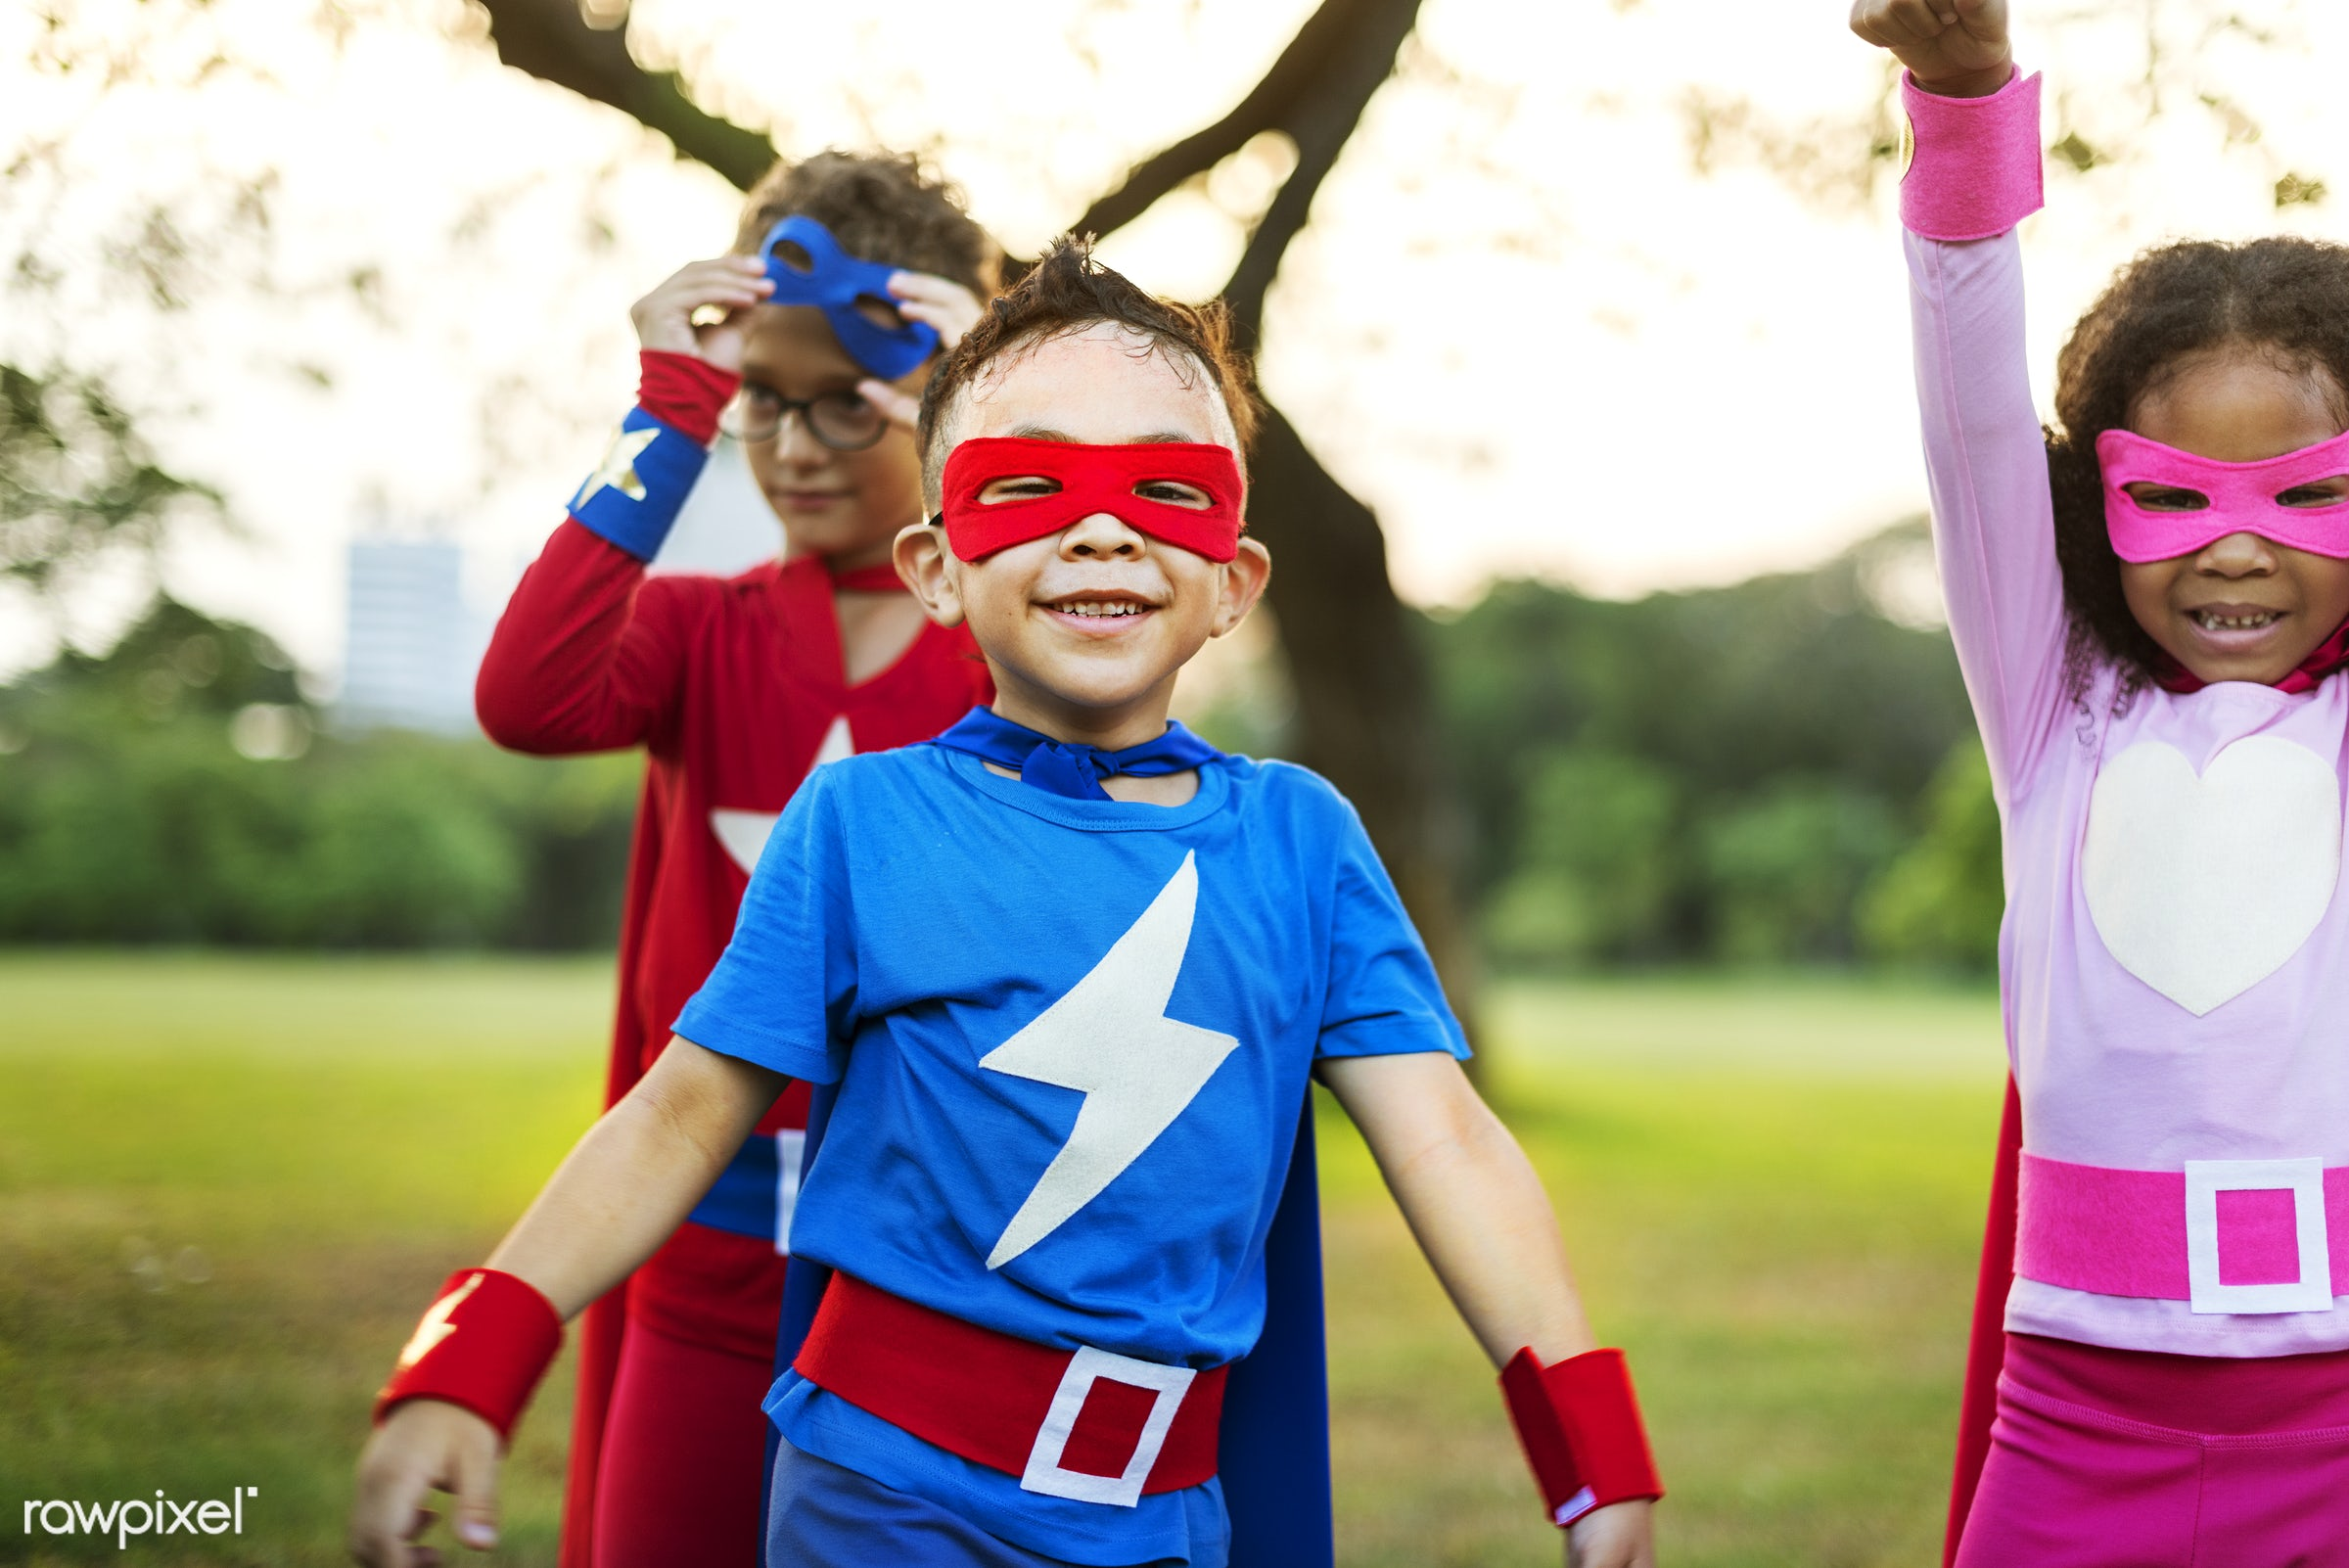 Superhero kids with superpowers - superhero, activity, african descent, asian ethnicity, aspirations, boys, brave, cheerful...